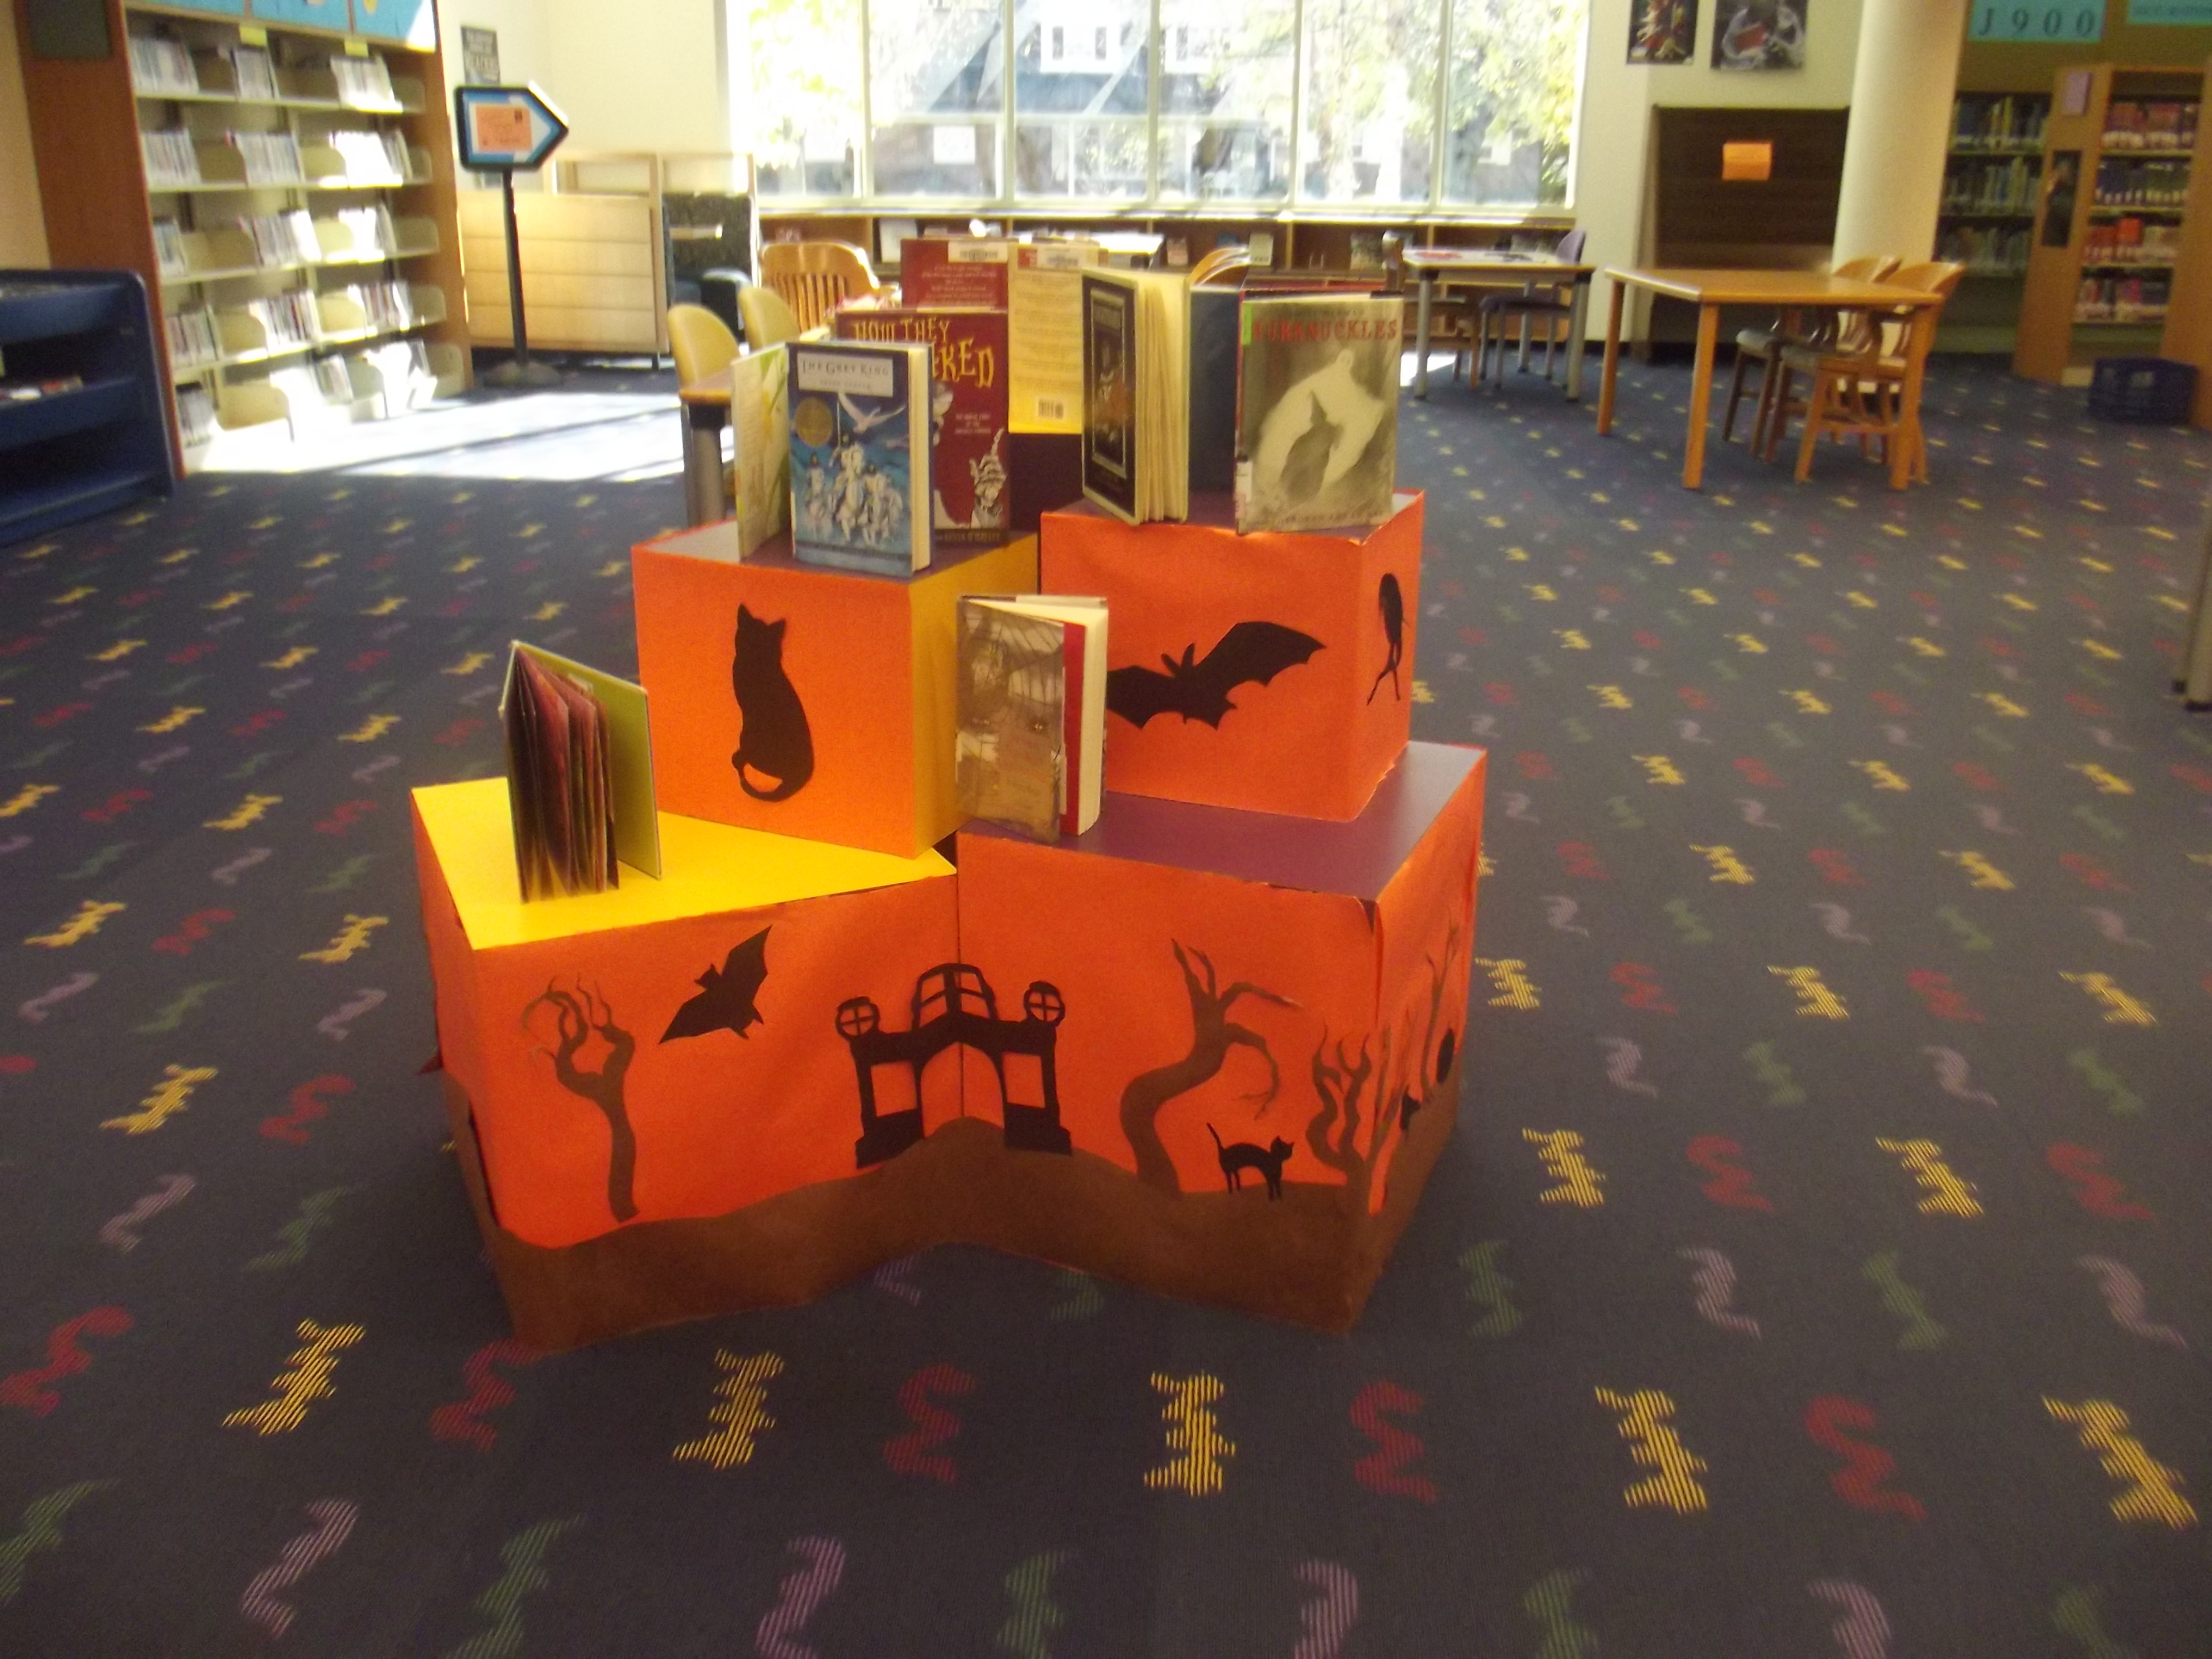 Party Ideas Library Display Halloween 2012 By Singing Light